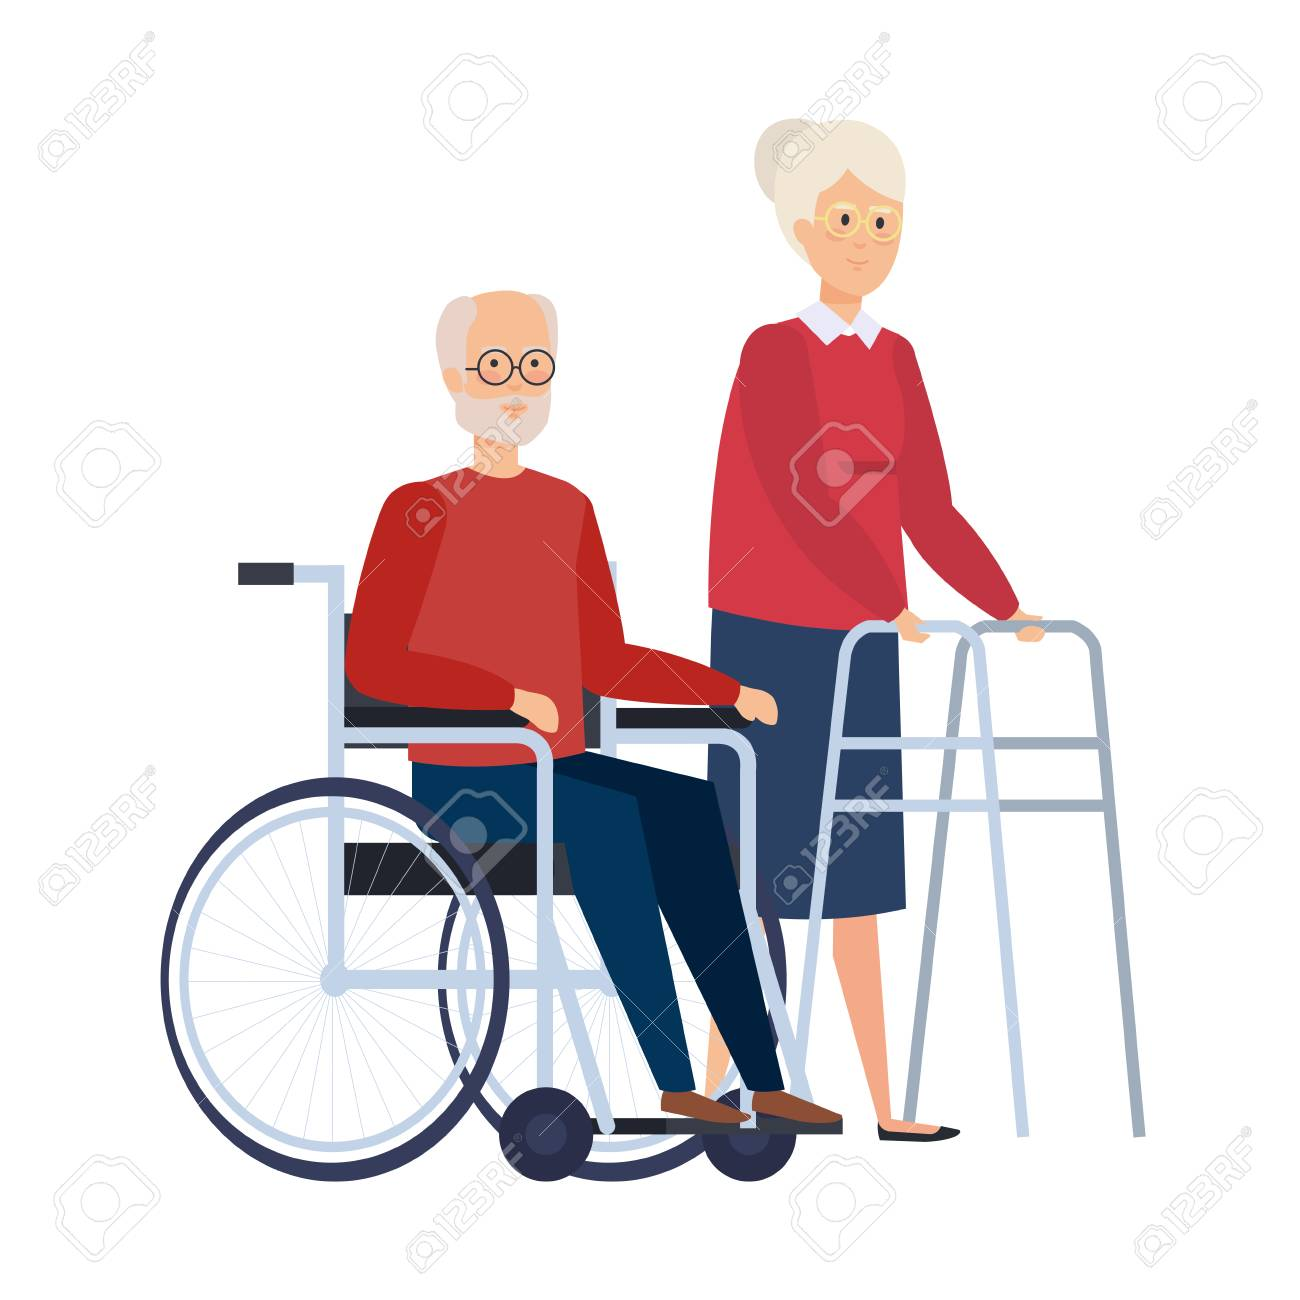 old woman with walker and old man in wheelchair vector illustration - 127515020